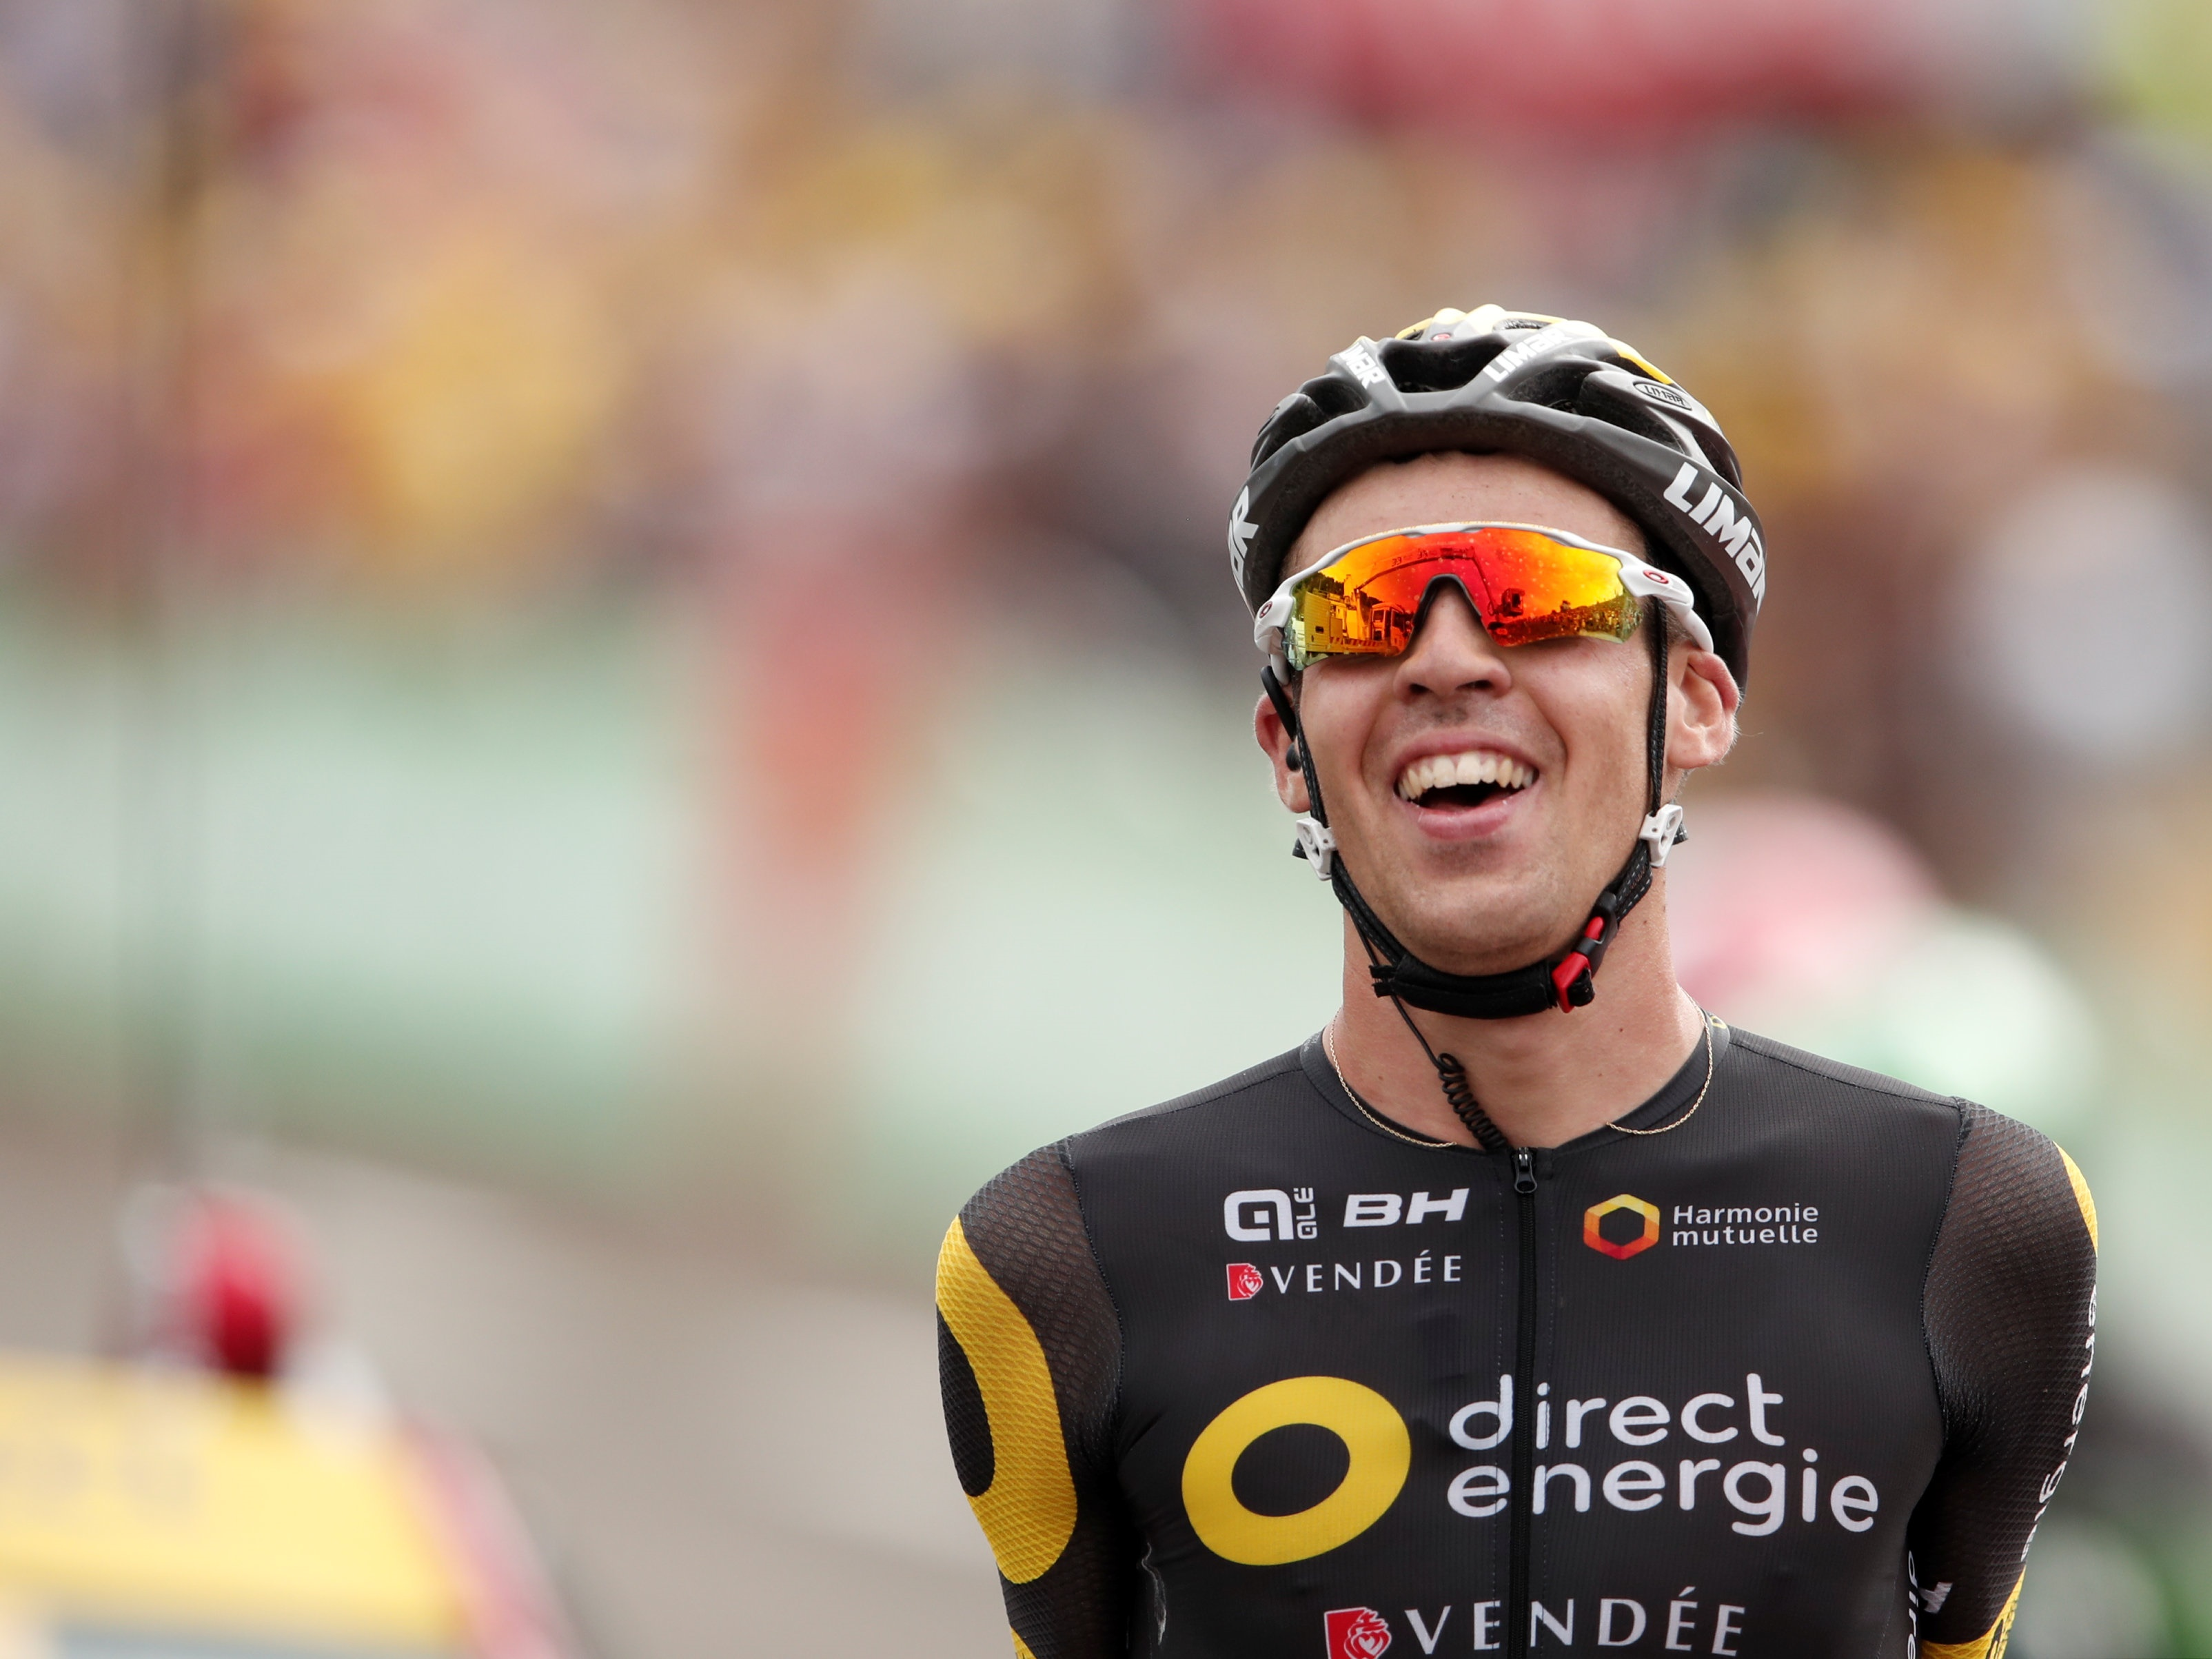 Lillian Calmejane will be looking to repeat his Stage 8 heroics on Bastille Day